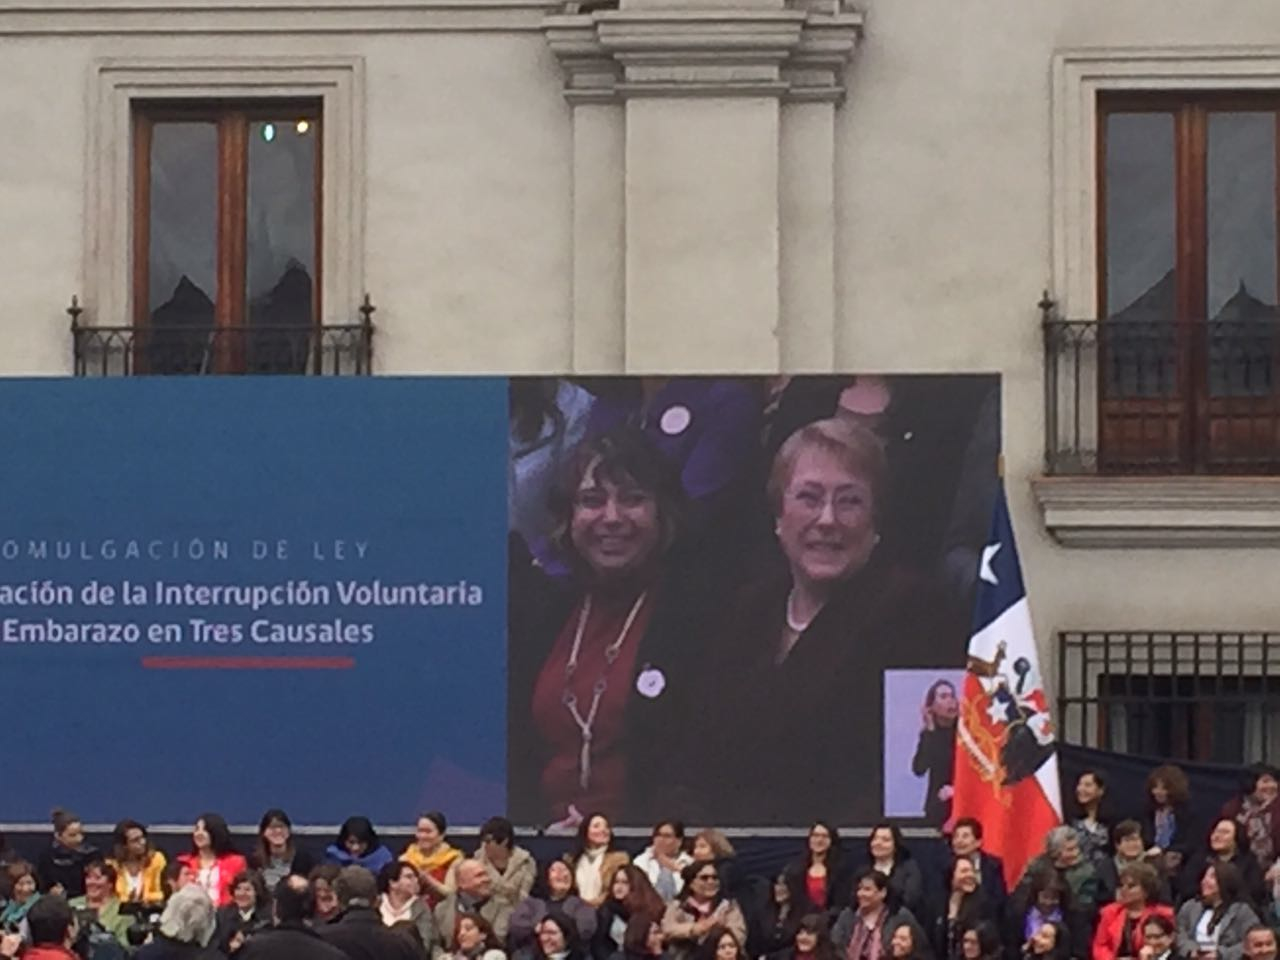 Lidia Casas (on the left) Michelle Bachelet (on the right)